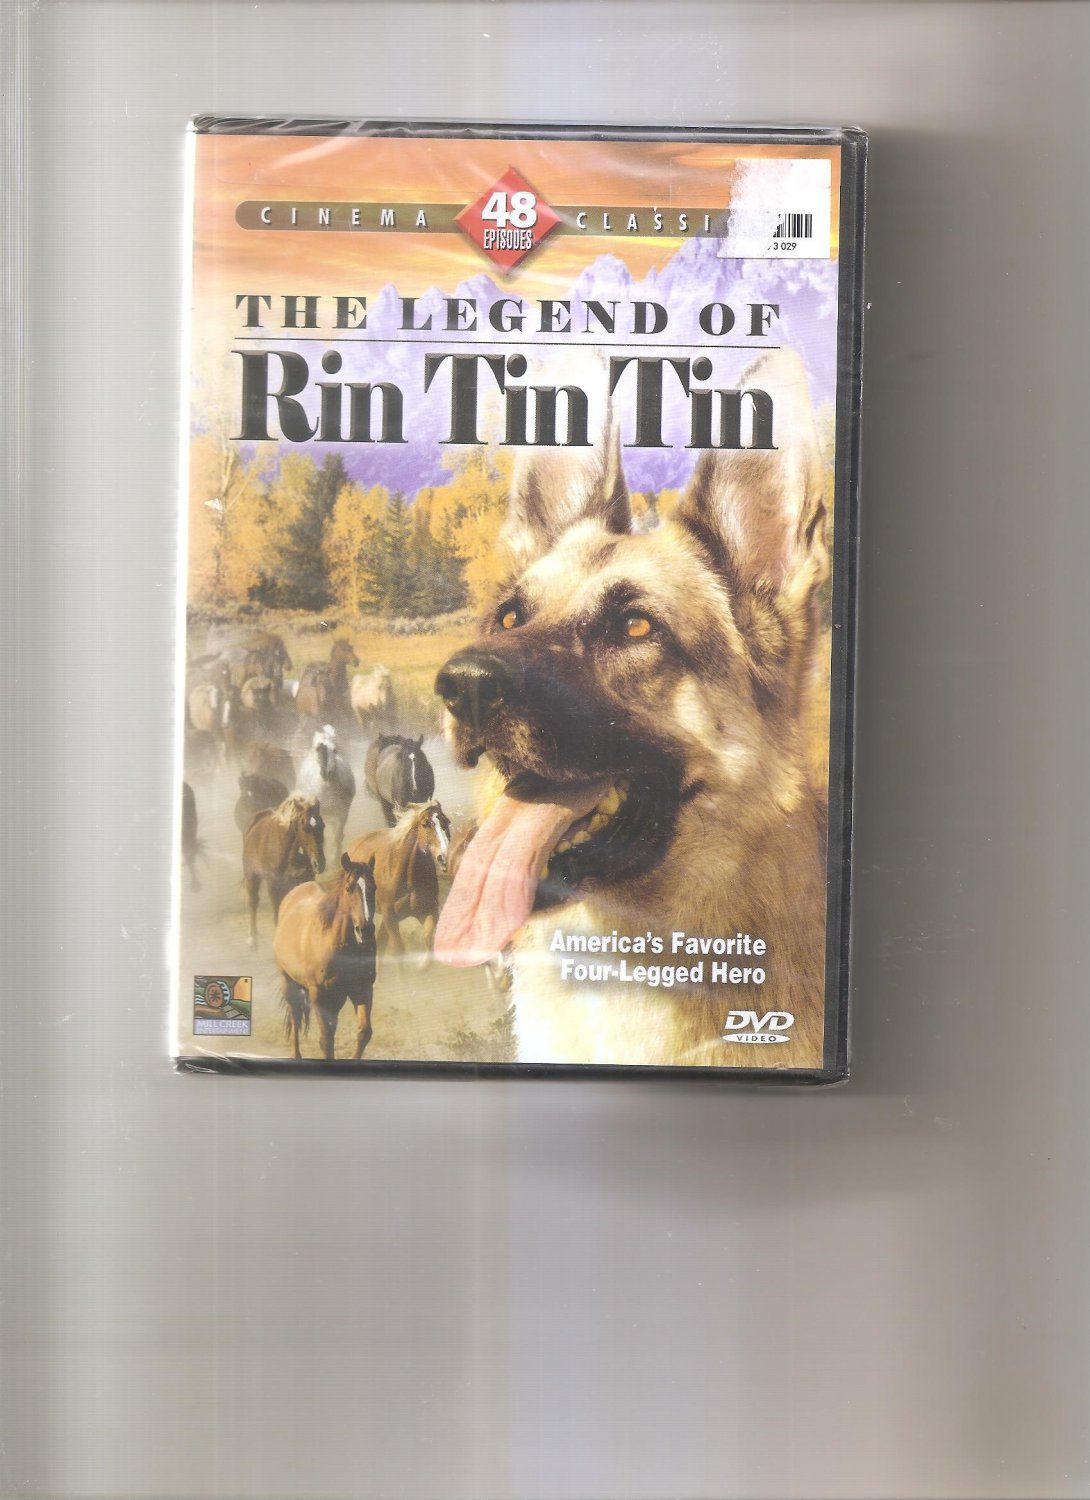 The Legend of Rin Tin Tin - 48 Episodes (DVD, 2008)